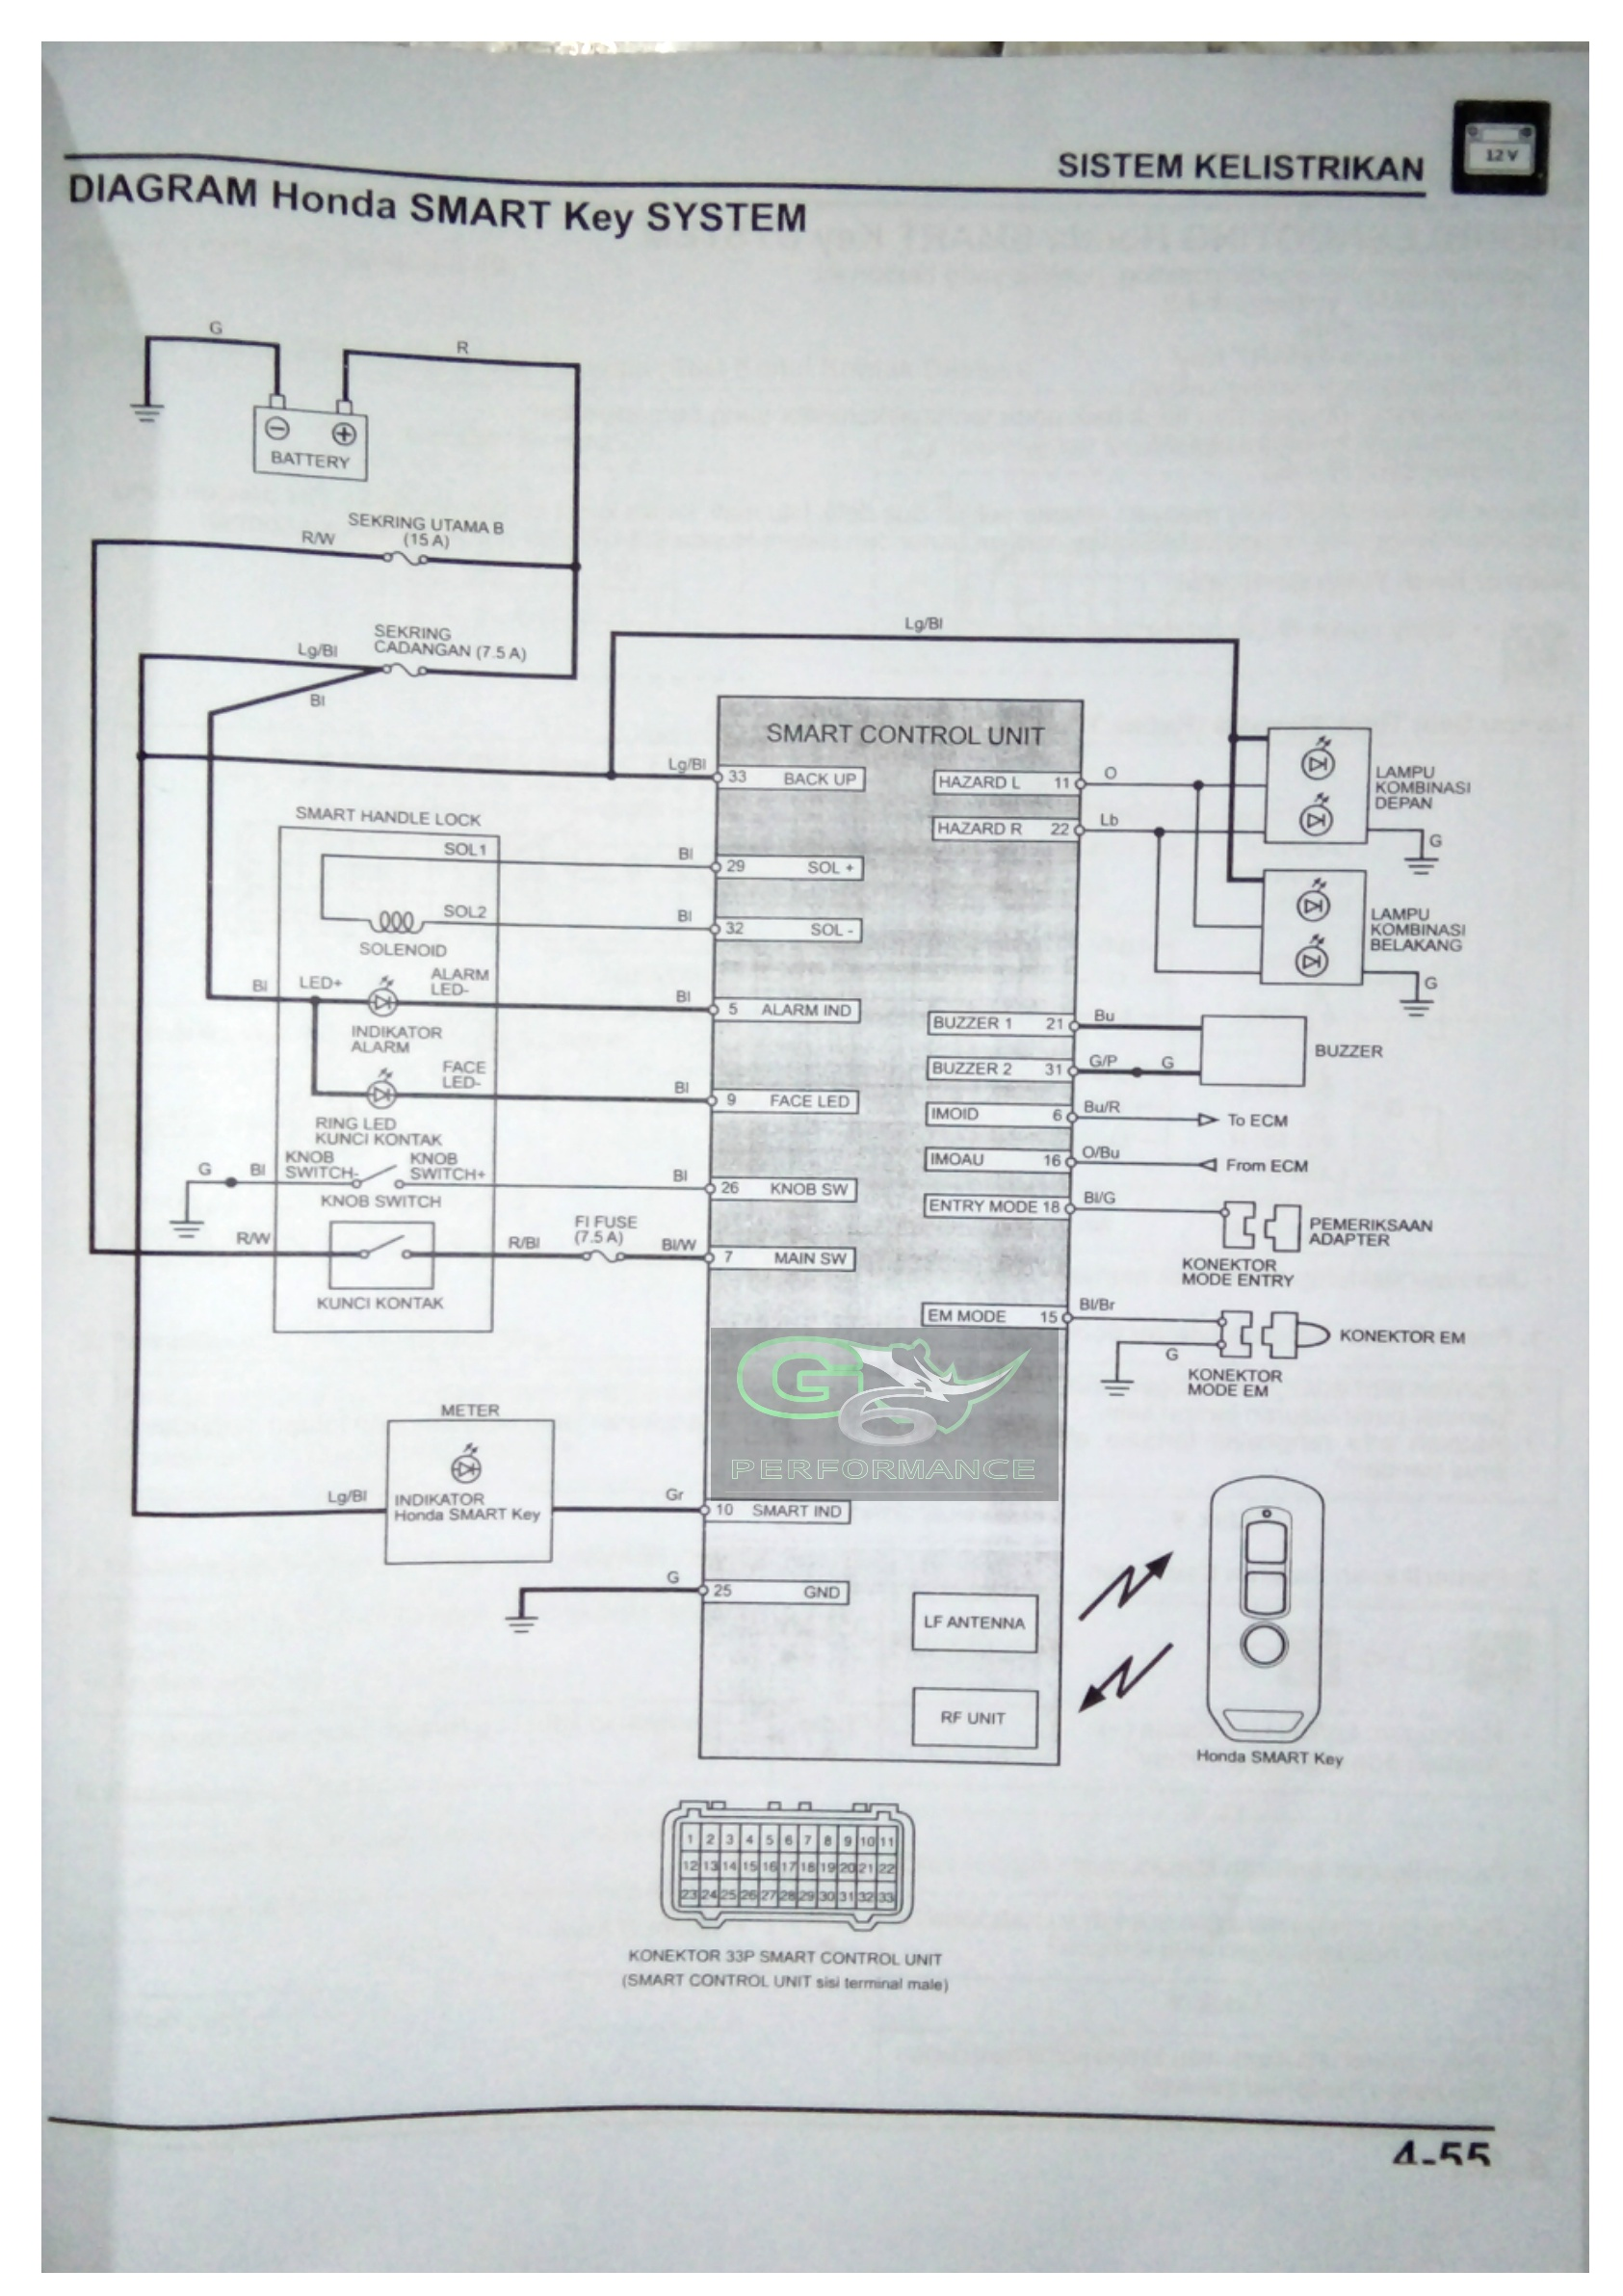 electric wiring system diagram honda new pcx 150 2018 gisix s blog wiring diagram honda pcx [ 1685 x 2383 Pixel ]